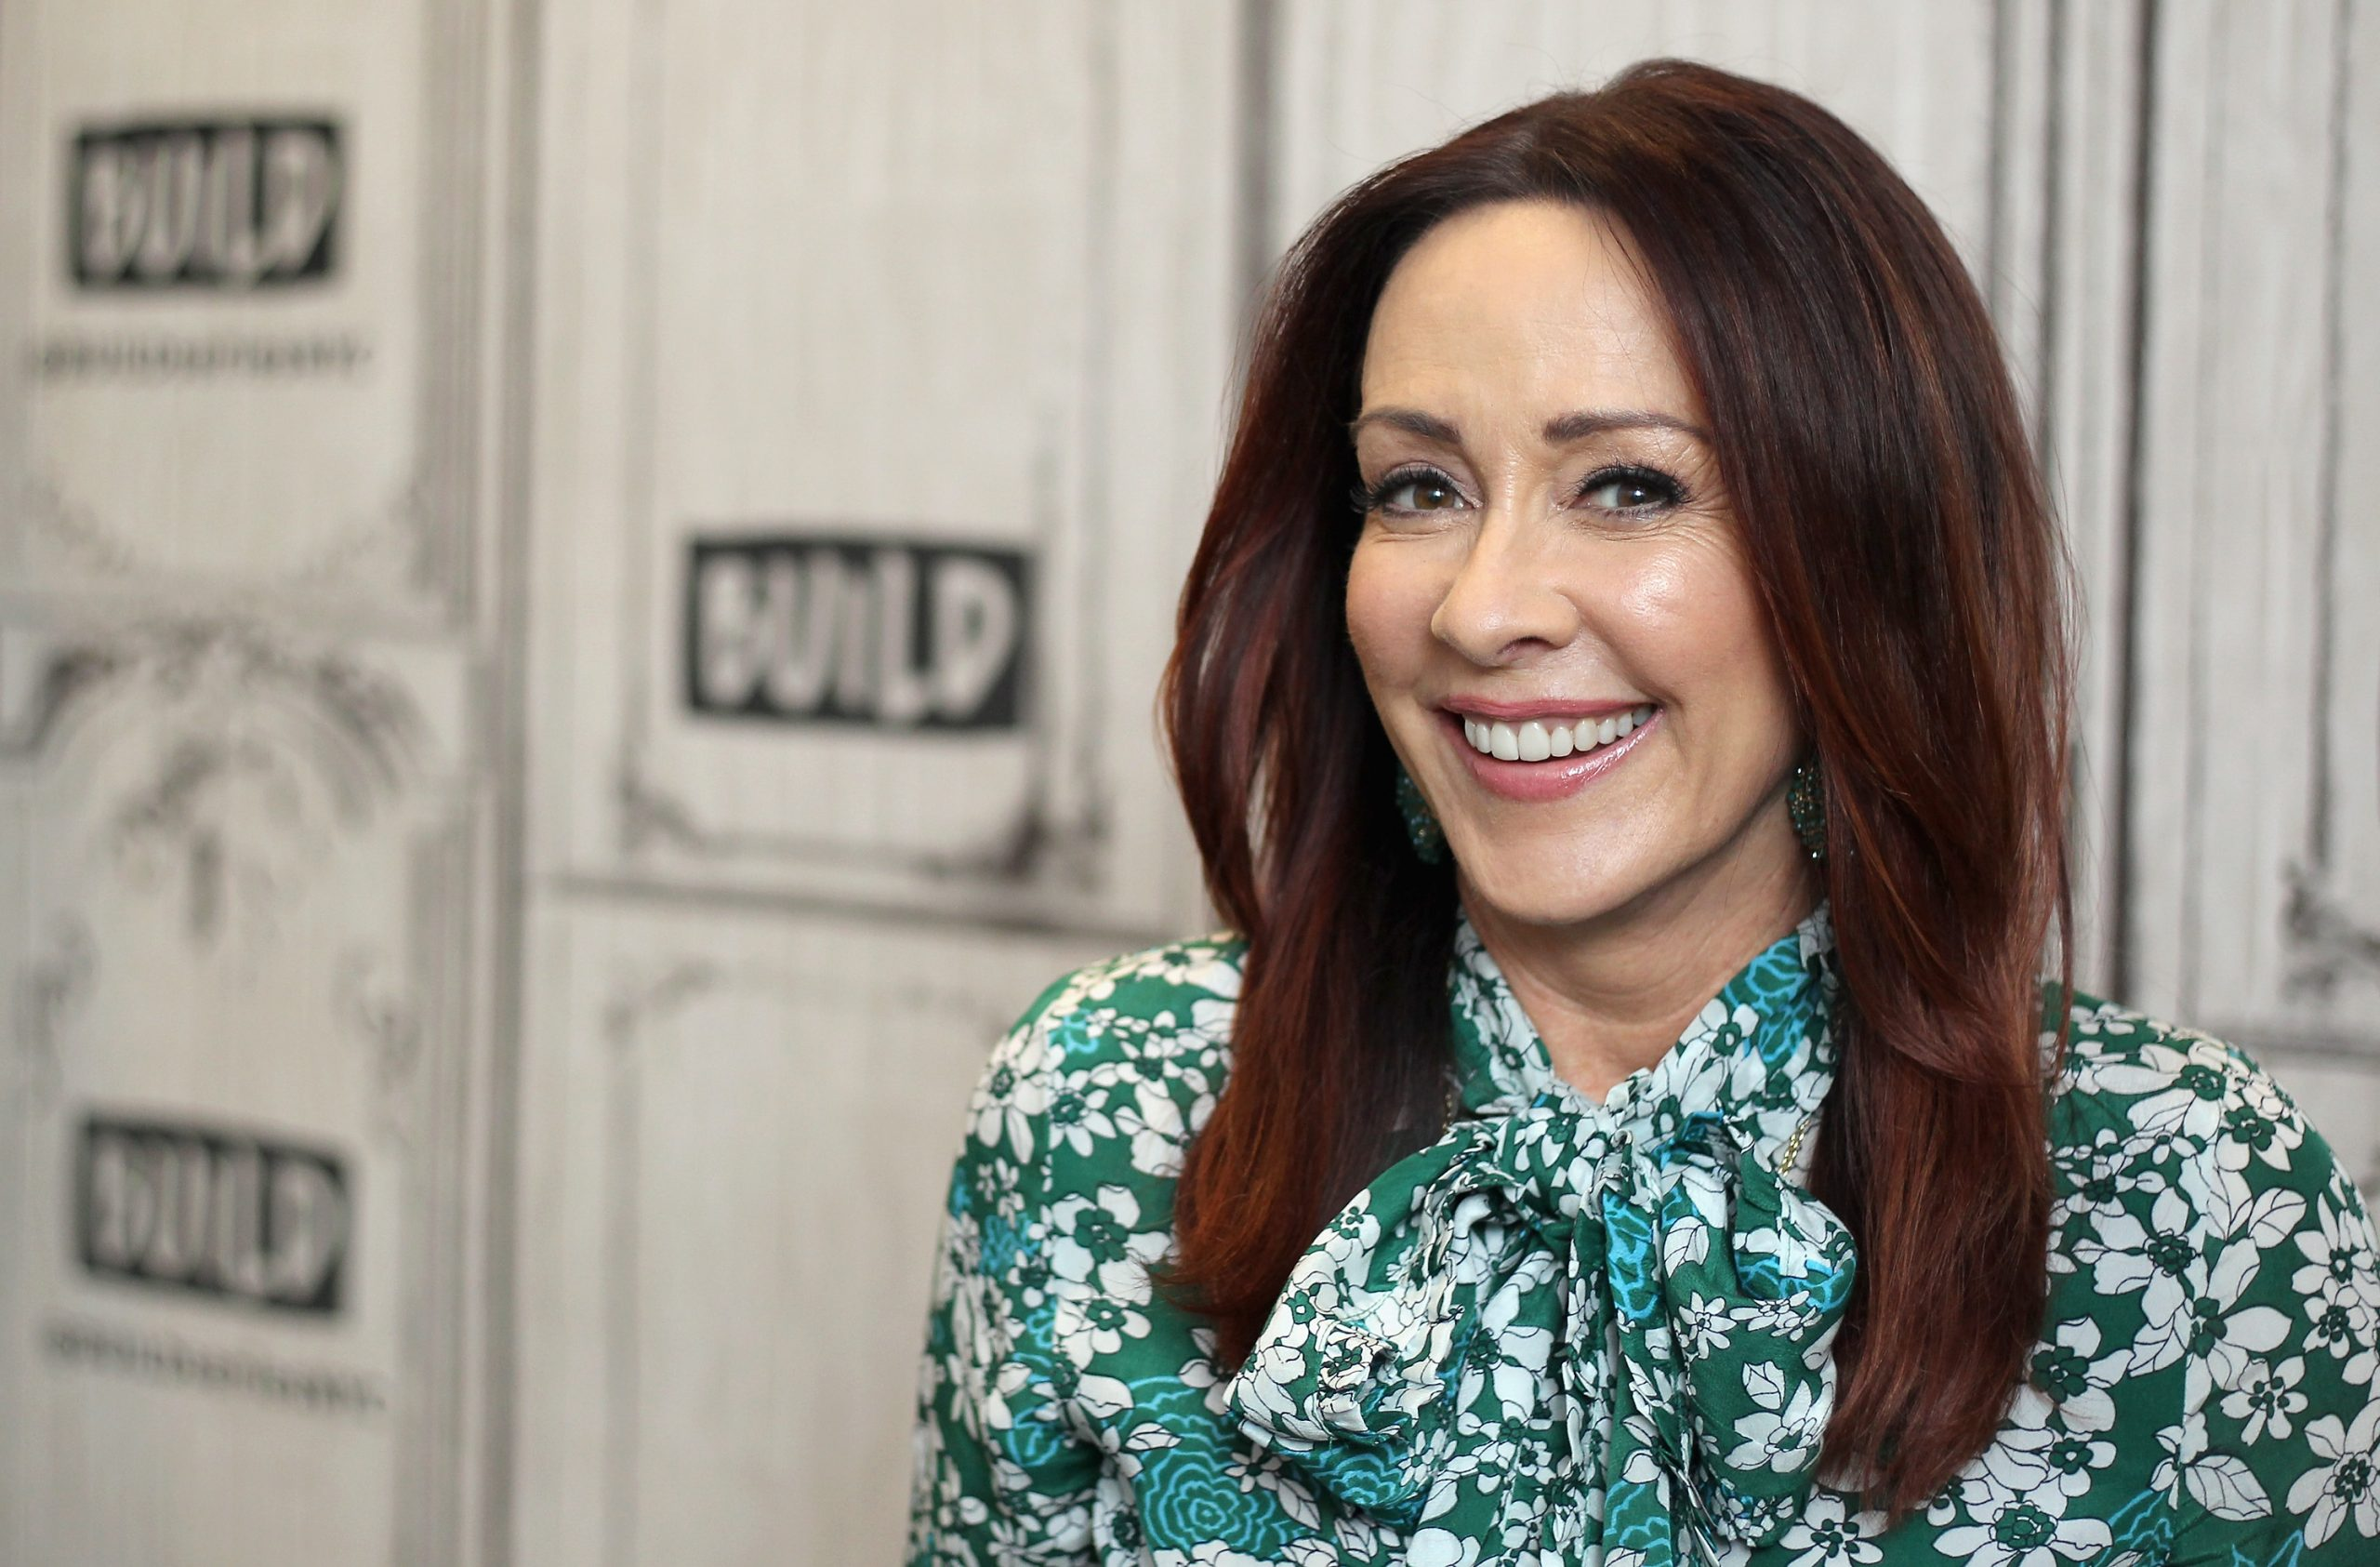 Former 'Everybody Loves Raymond' star Patricia Heaton smiles for the camera in a long-sleeved white and green print top.